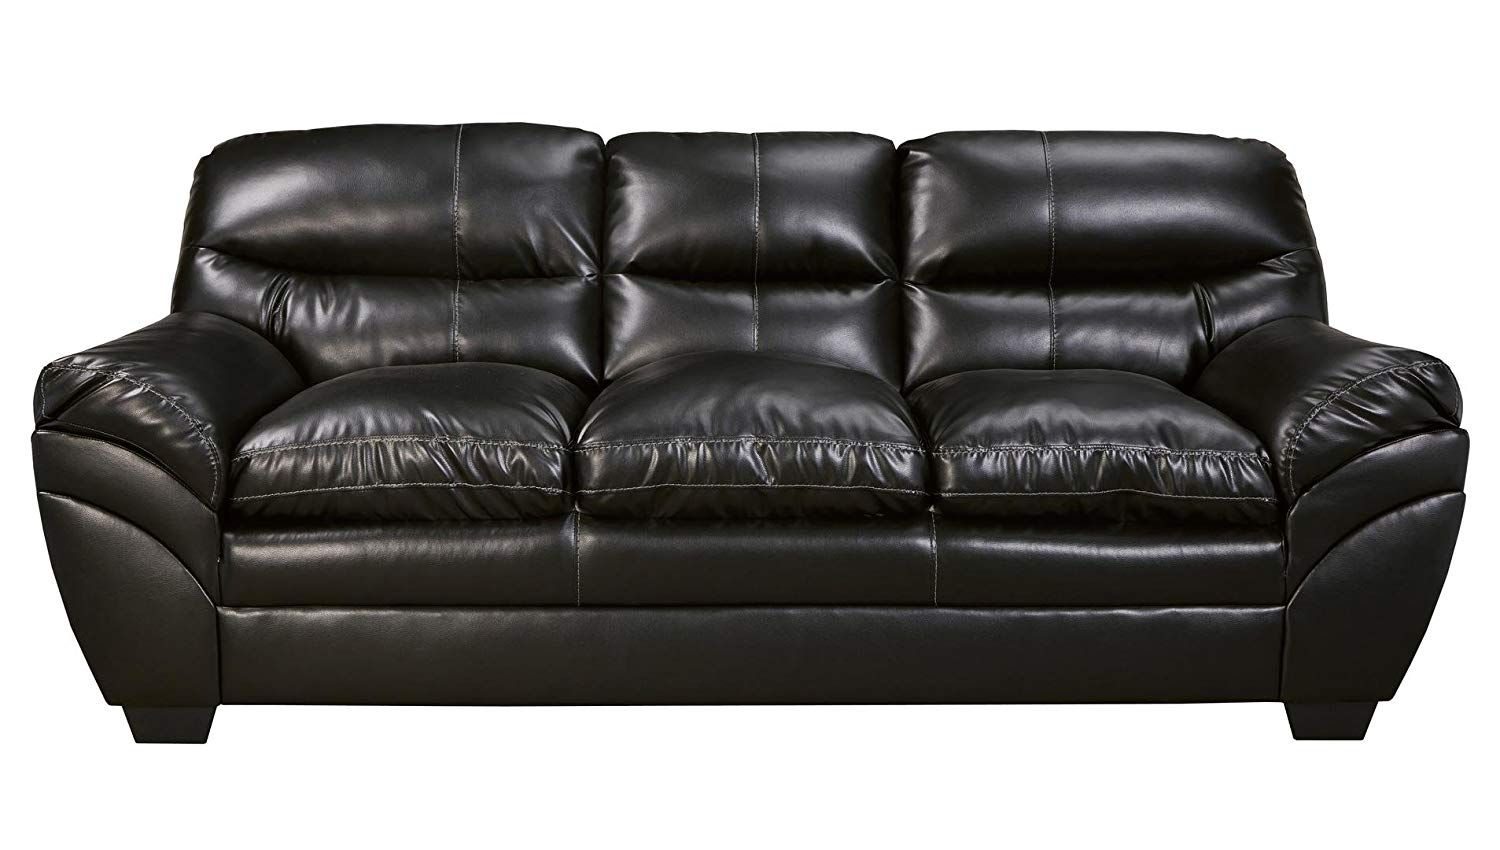 Ashley Tassler Durablend Leather Sofa In Black Very Kind Of You To Have Dropped By To View Our Picture Ashley Furniture Ashley Furniture Living Room Sofa